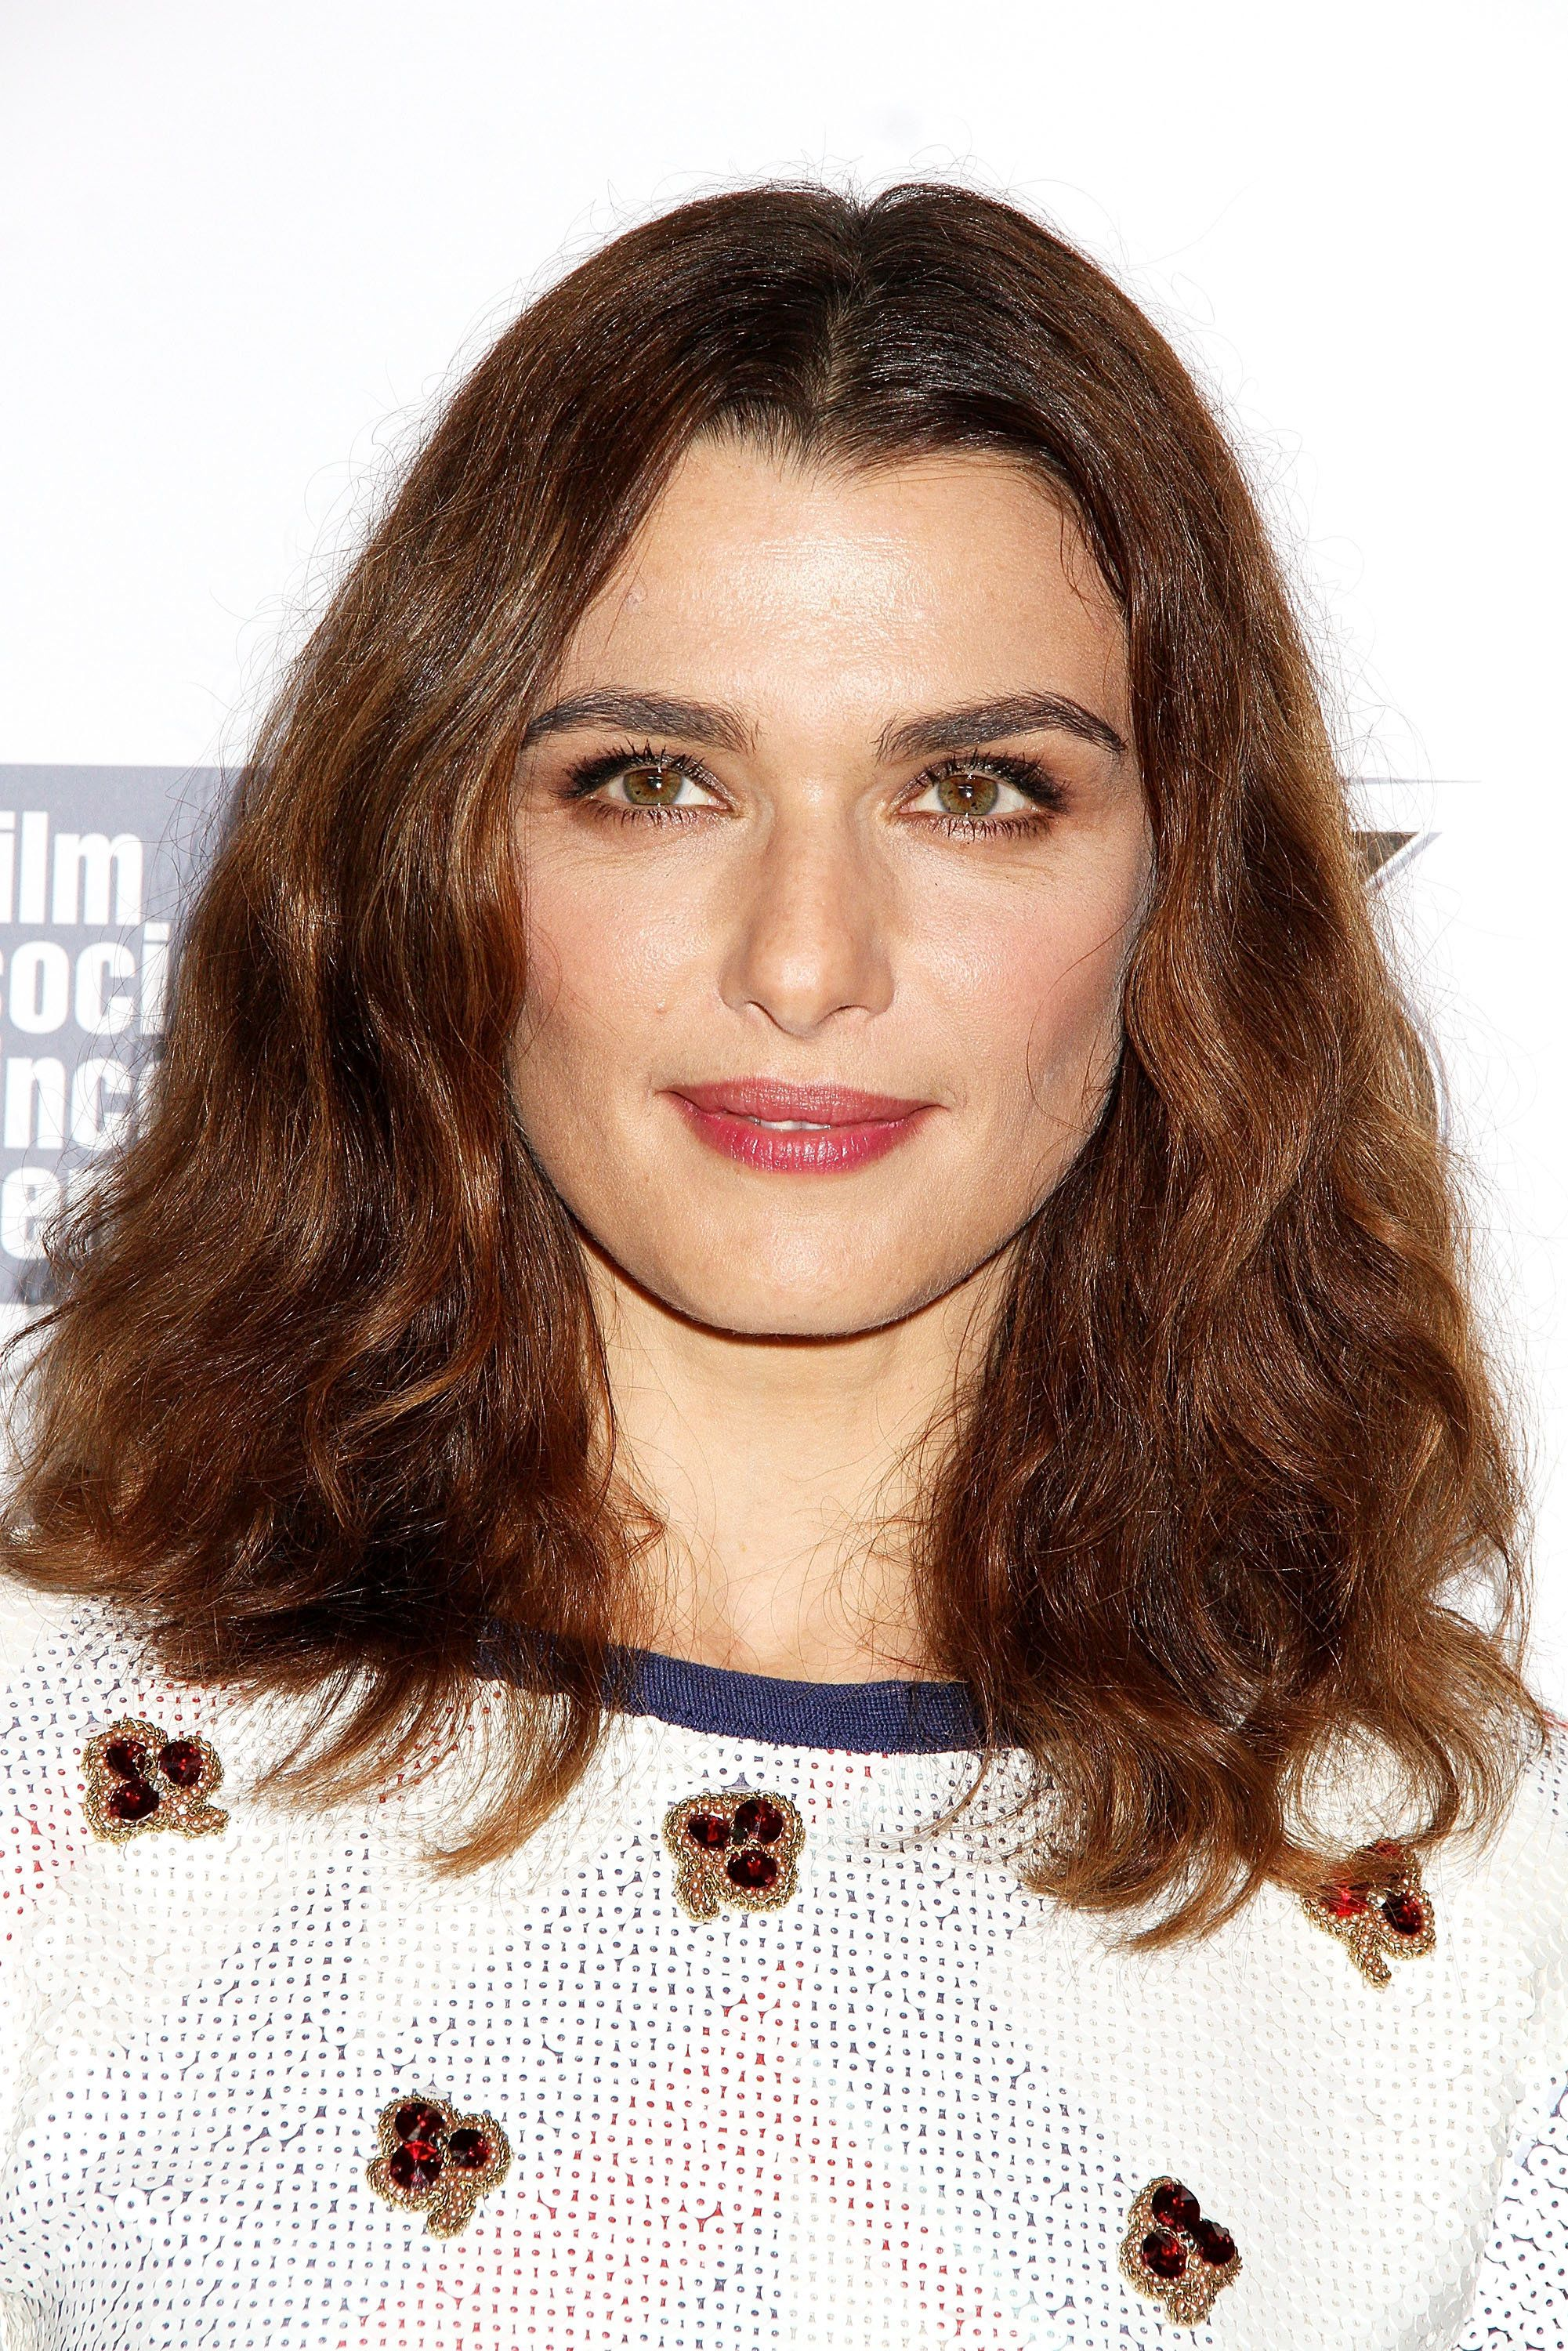 NEW YORK, NY - SEPTEMBER 27:  Rachel Weisz attends the 53rd New York Film Festival - 'The Martian' Premiere at Alice Tully Hall on September 27, 2015 in New York City.  (Photo by Laura Cavanaugh/FilmMagic)